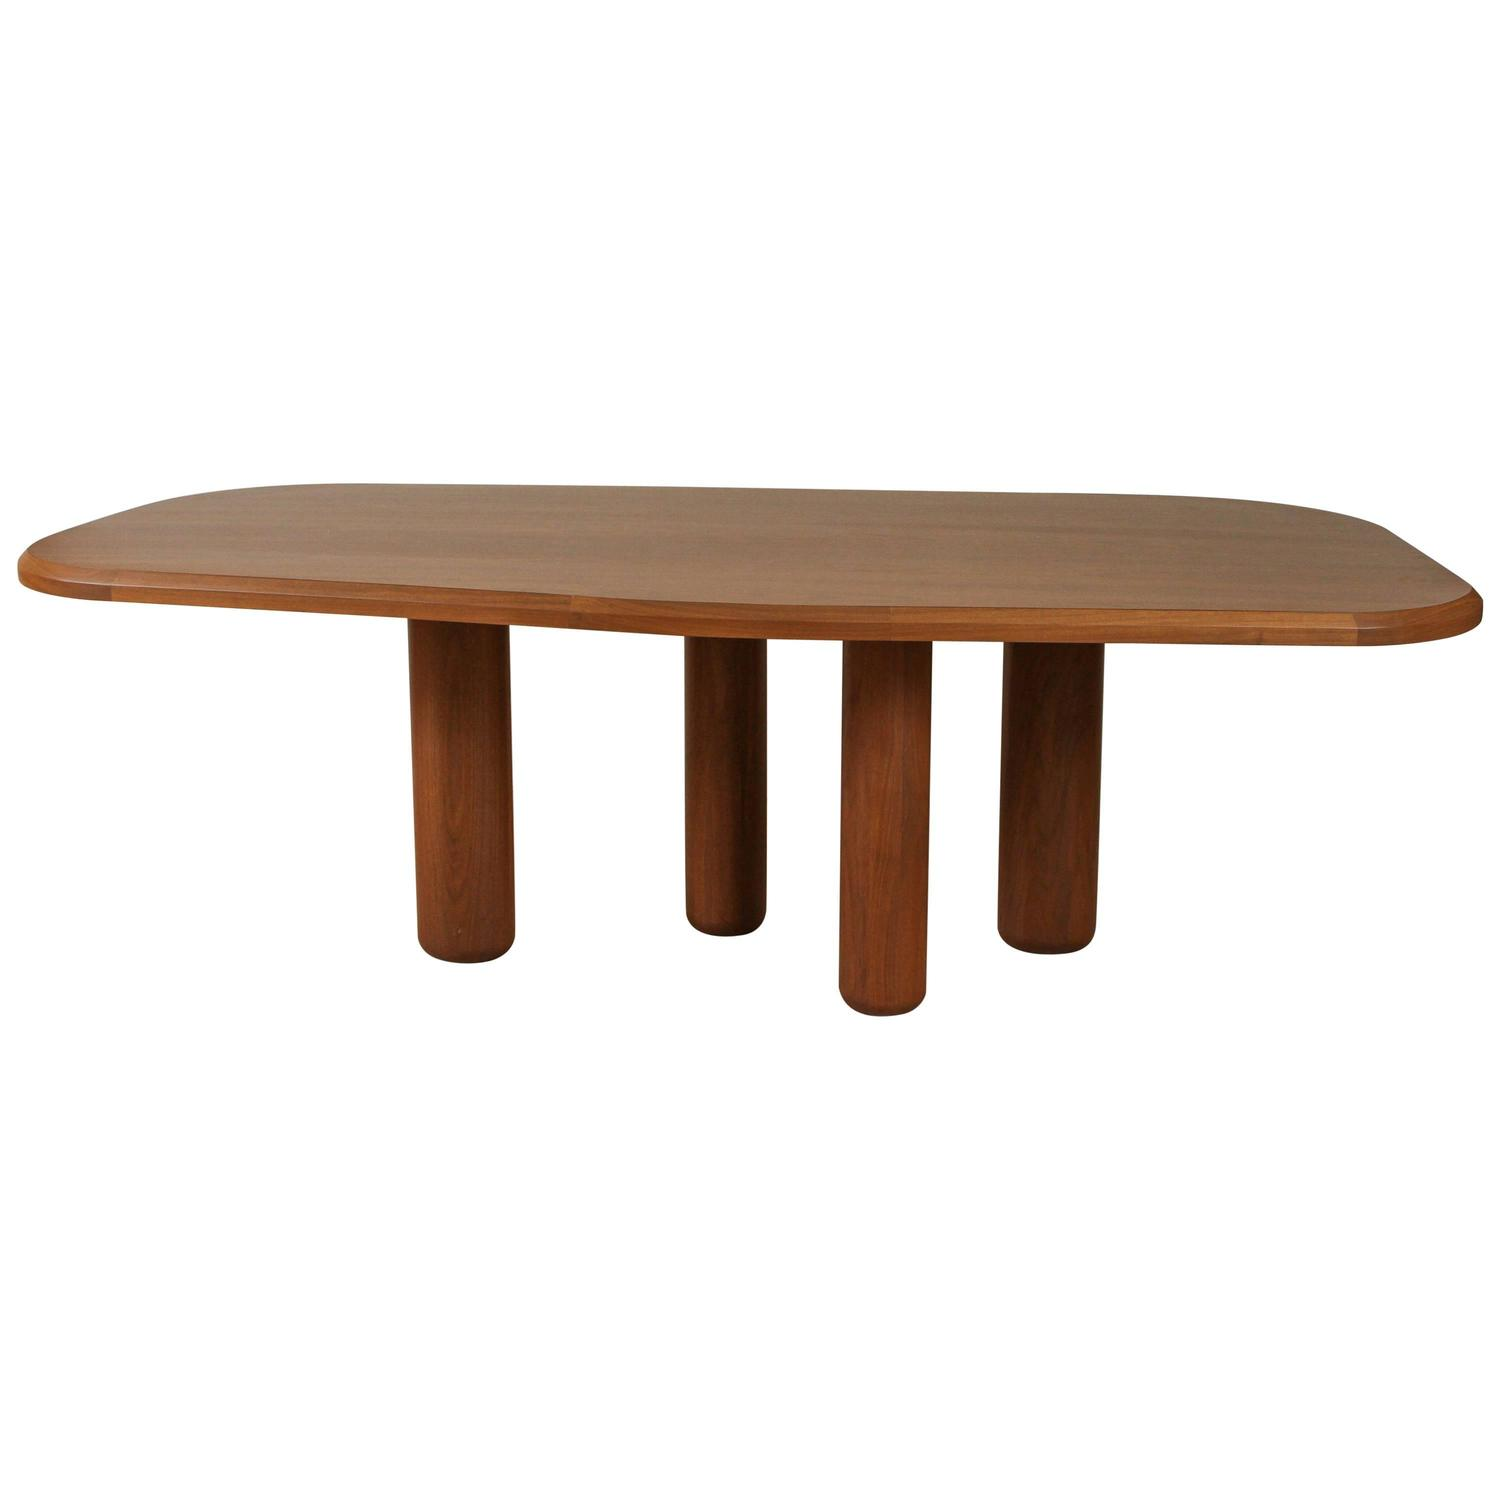 20th century specialists dining room tables   965 for sale at 1stdibs